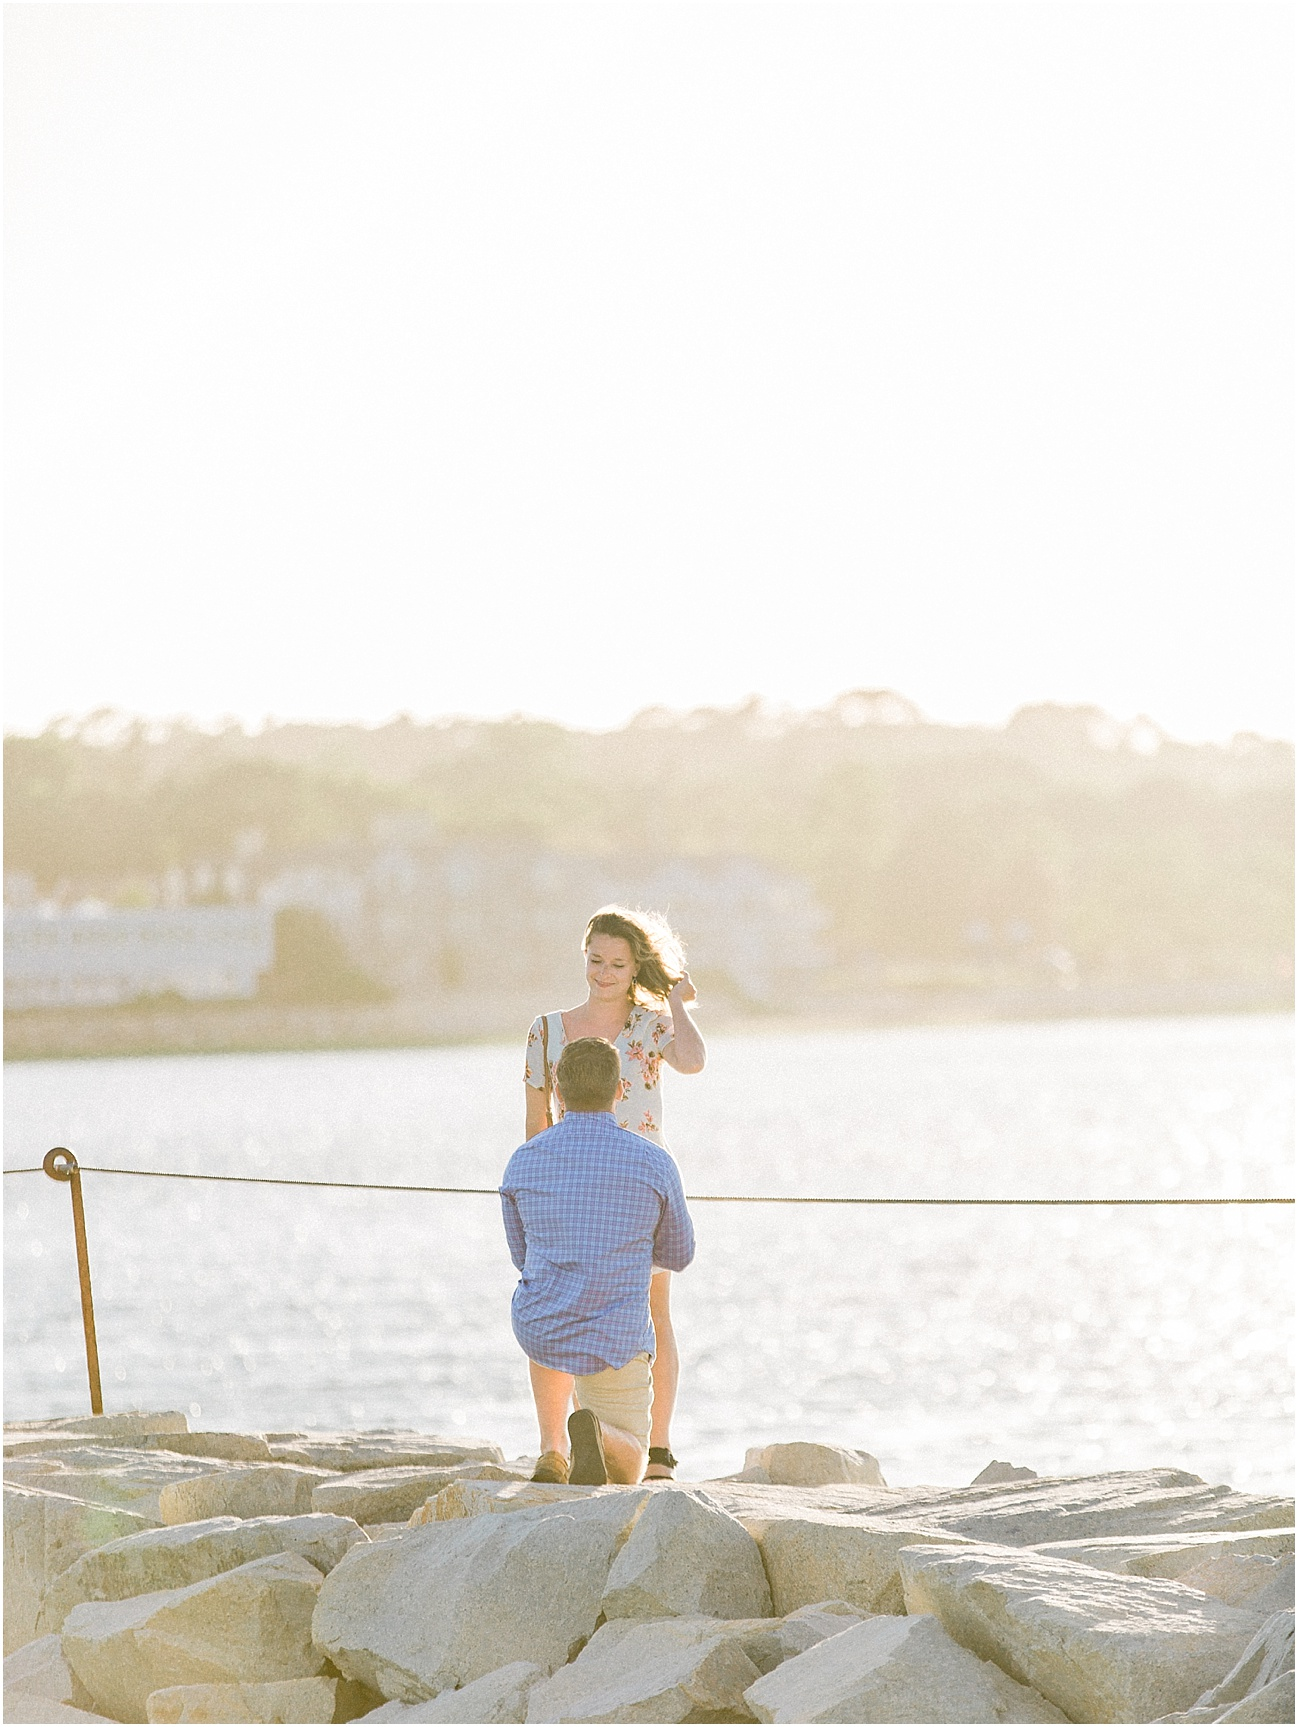 plymouth_jetty_proposal_engagement_cape_cod_boston_wedding_photographer_meredith_jane_photography_photo_0518.jpg